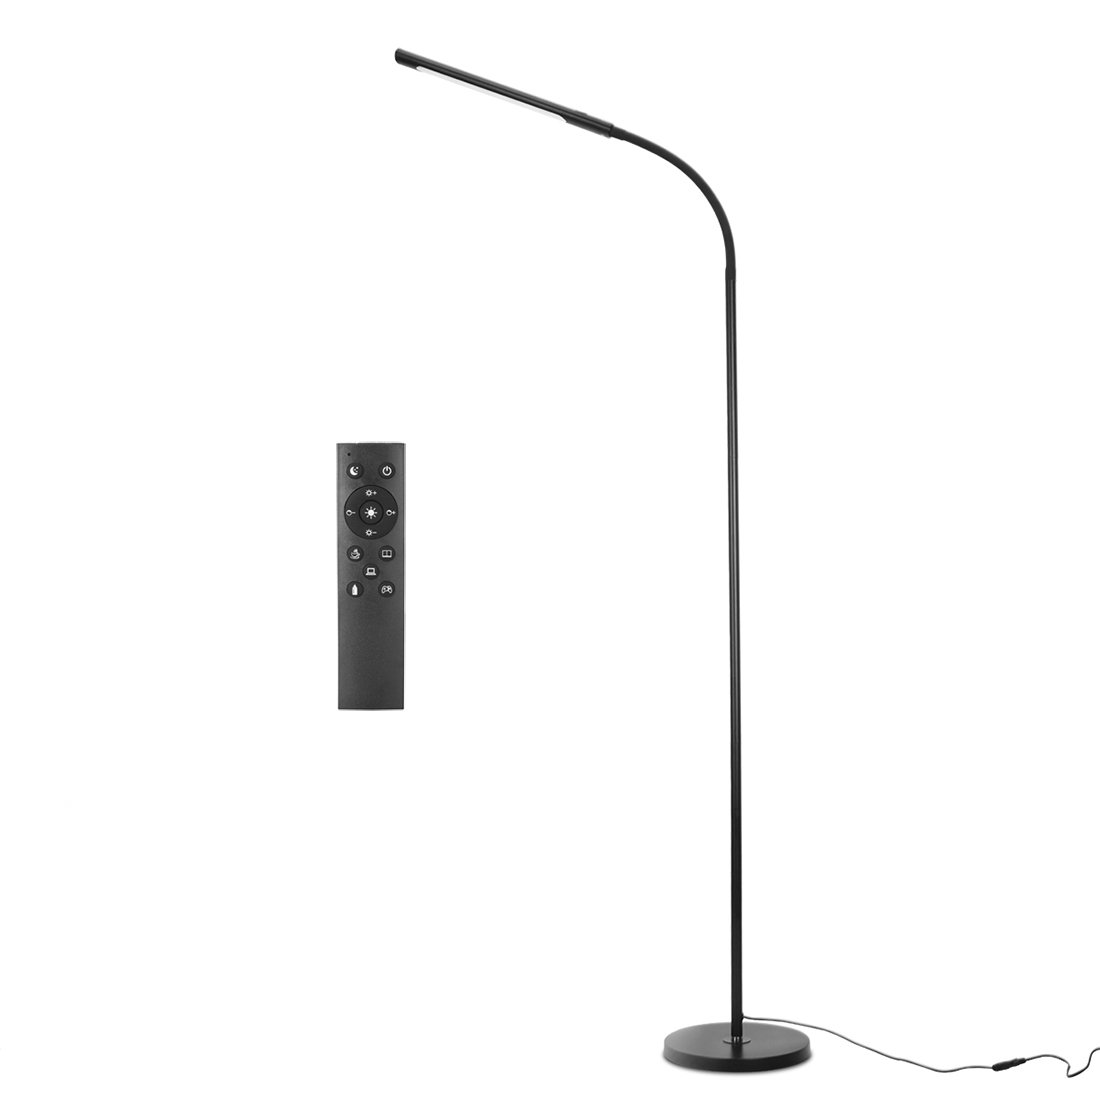 EAMATE 12W Remote Control LED Floor Lamp for Reading, Adjustable Long Gooseneck, Eye-Care Touch-Sensitive, Stepless Dimmable Color Temperature and Brightness (Black)